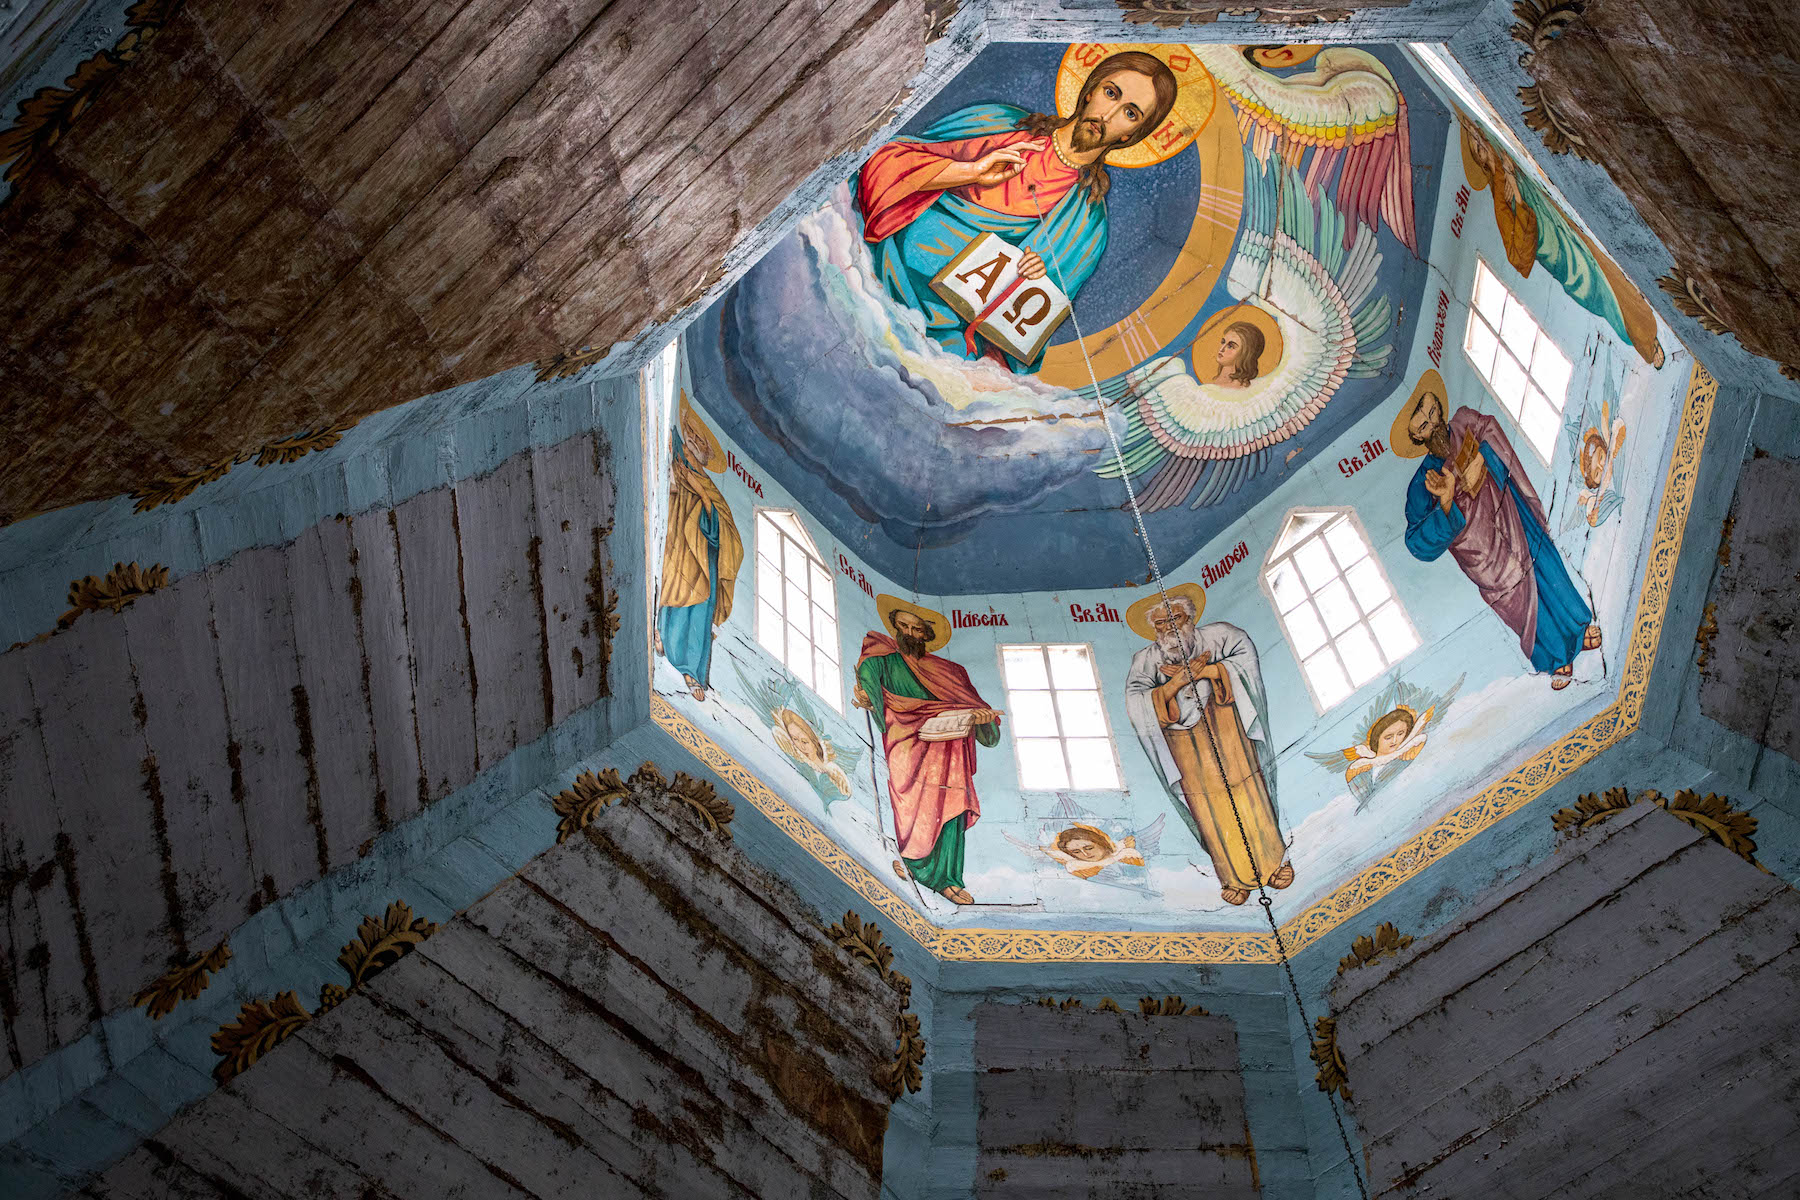 Detail of the painted ceilings inside the Orthodox church in the village of Krasne. This building is well maintained by former residents of the village, who occasionally still gather here for ceremonies. © Darmon Richter